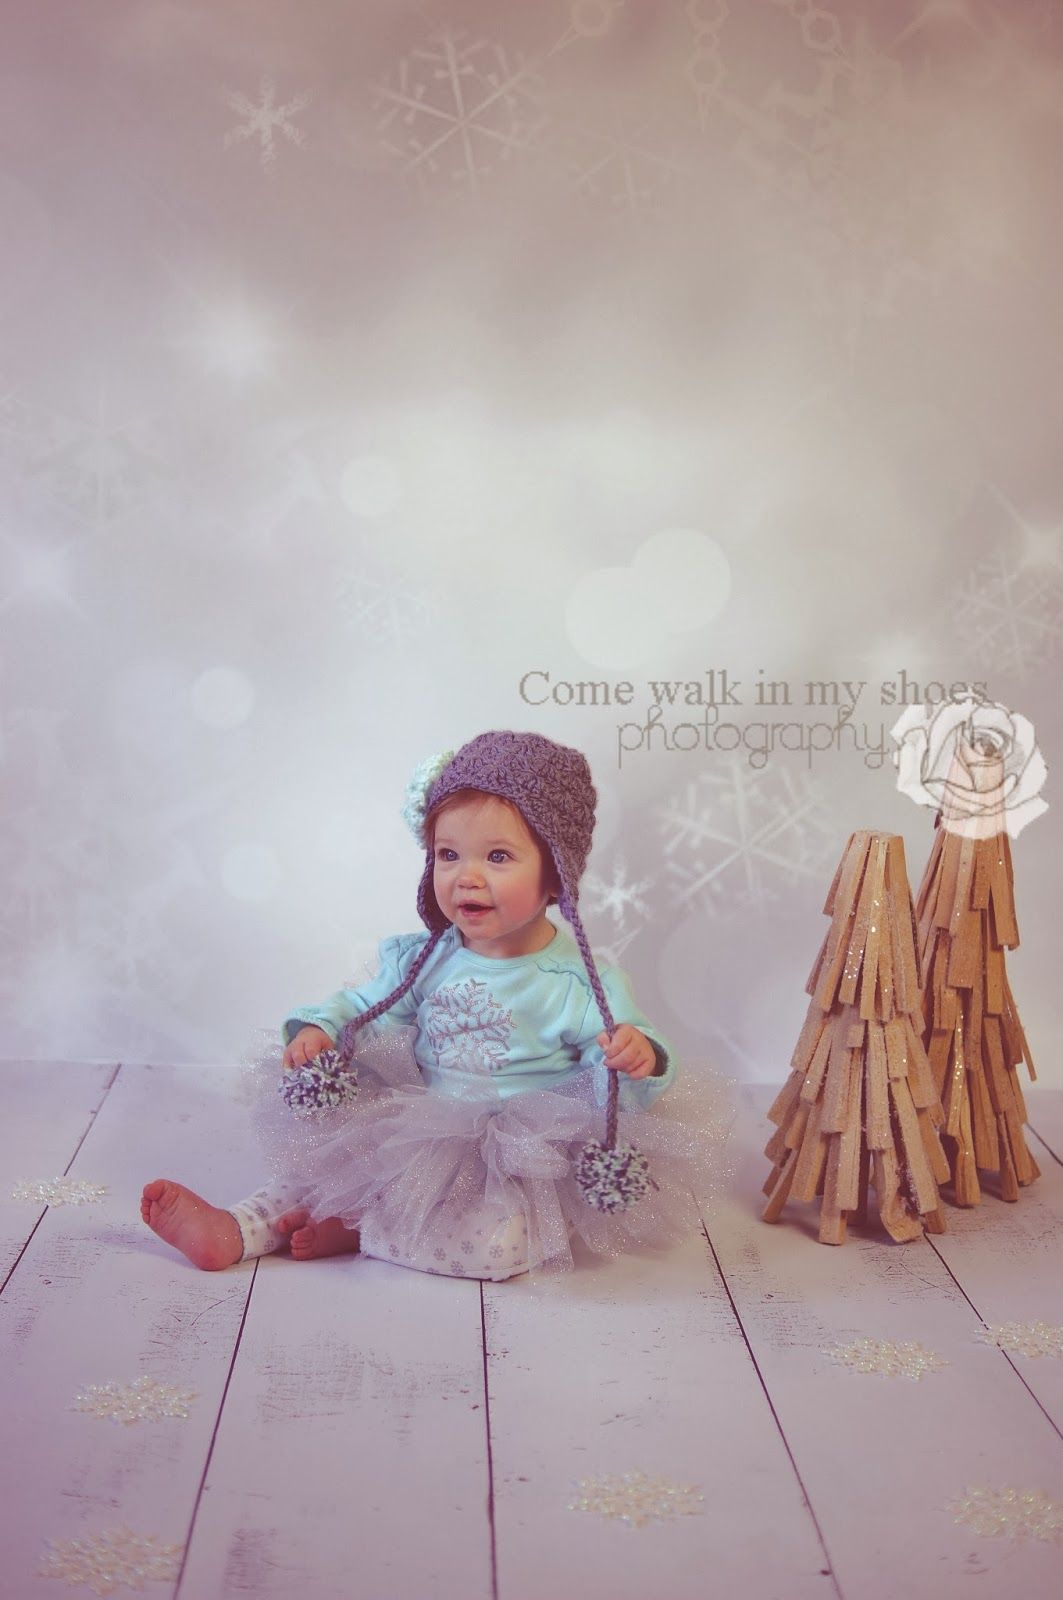 Come walk in my shoes First birthday photography, First